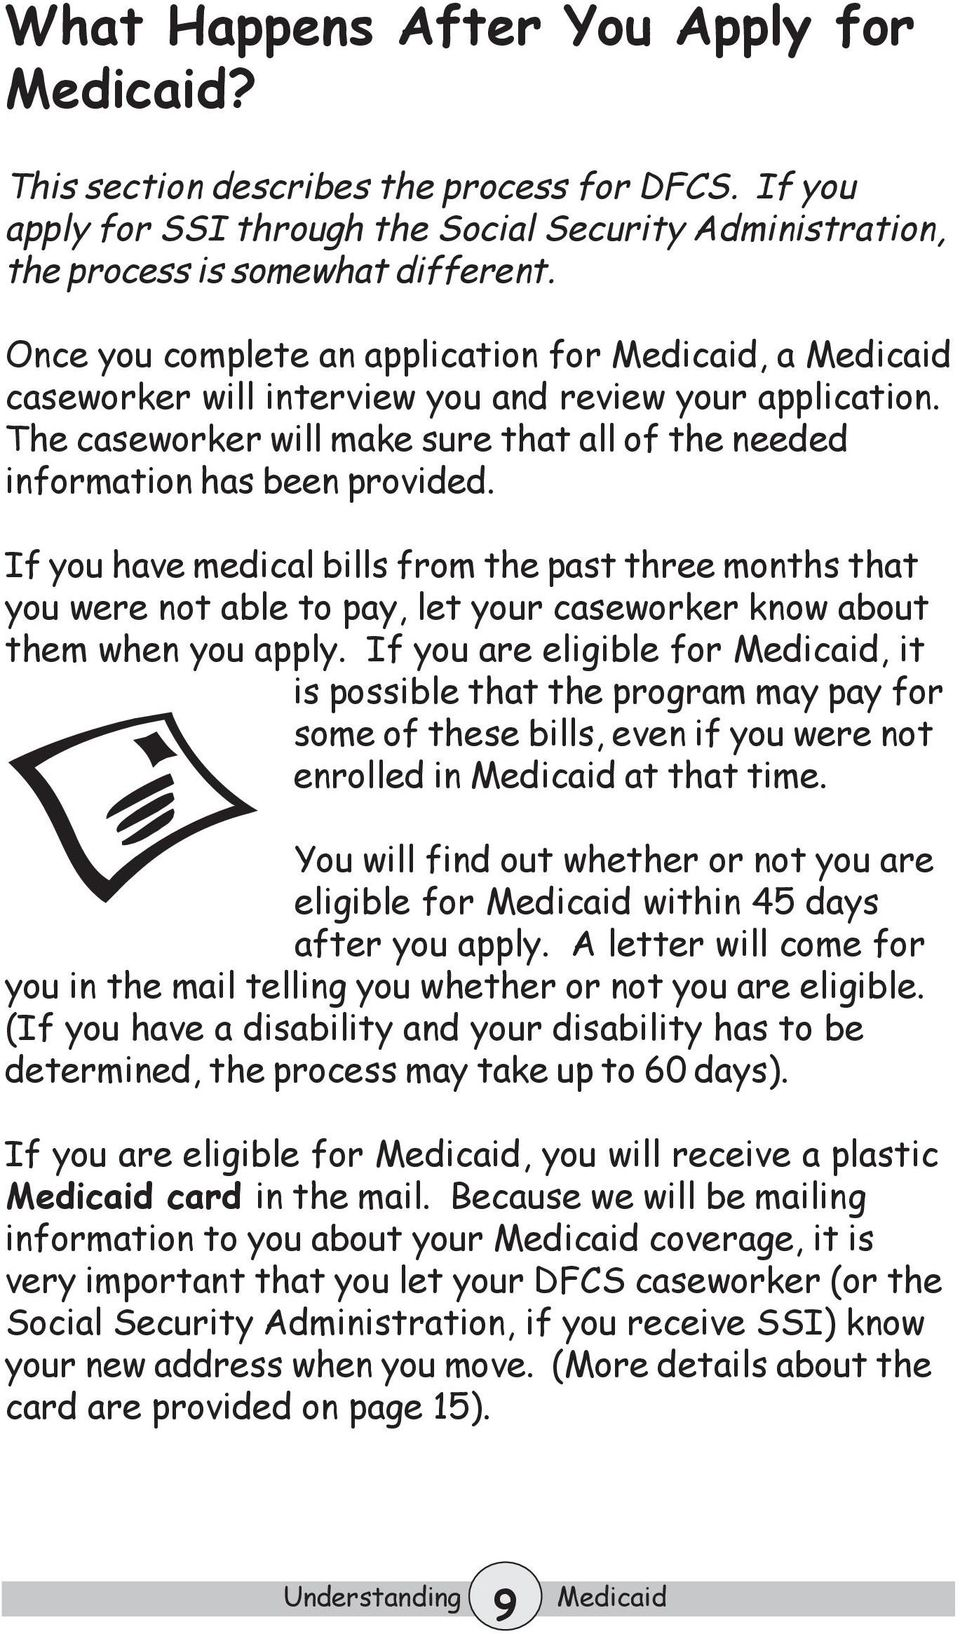 If you have medical bills from the past three months that you were not able to pay, let your caseworker know about them when you apply.